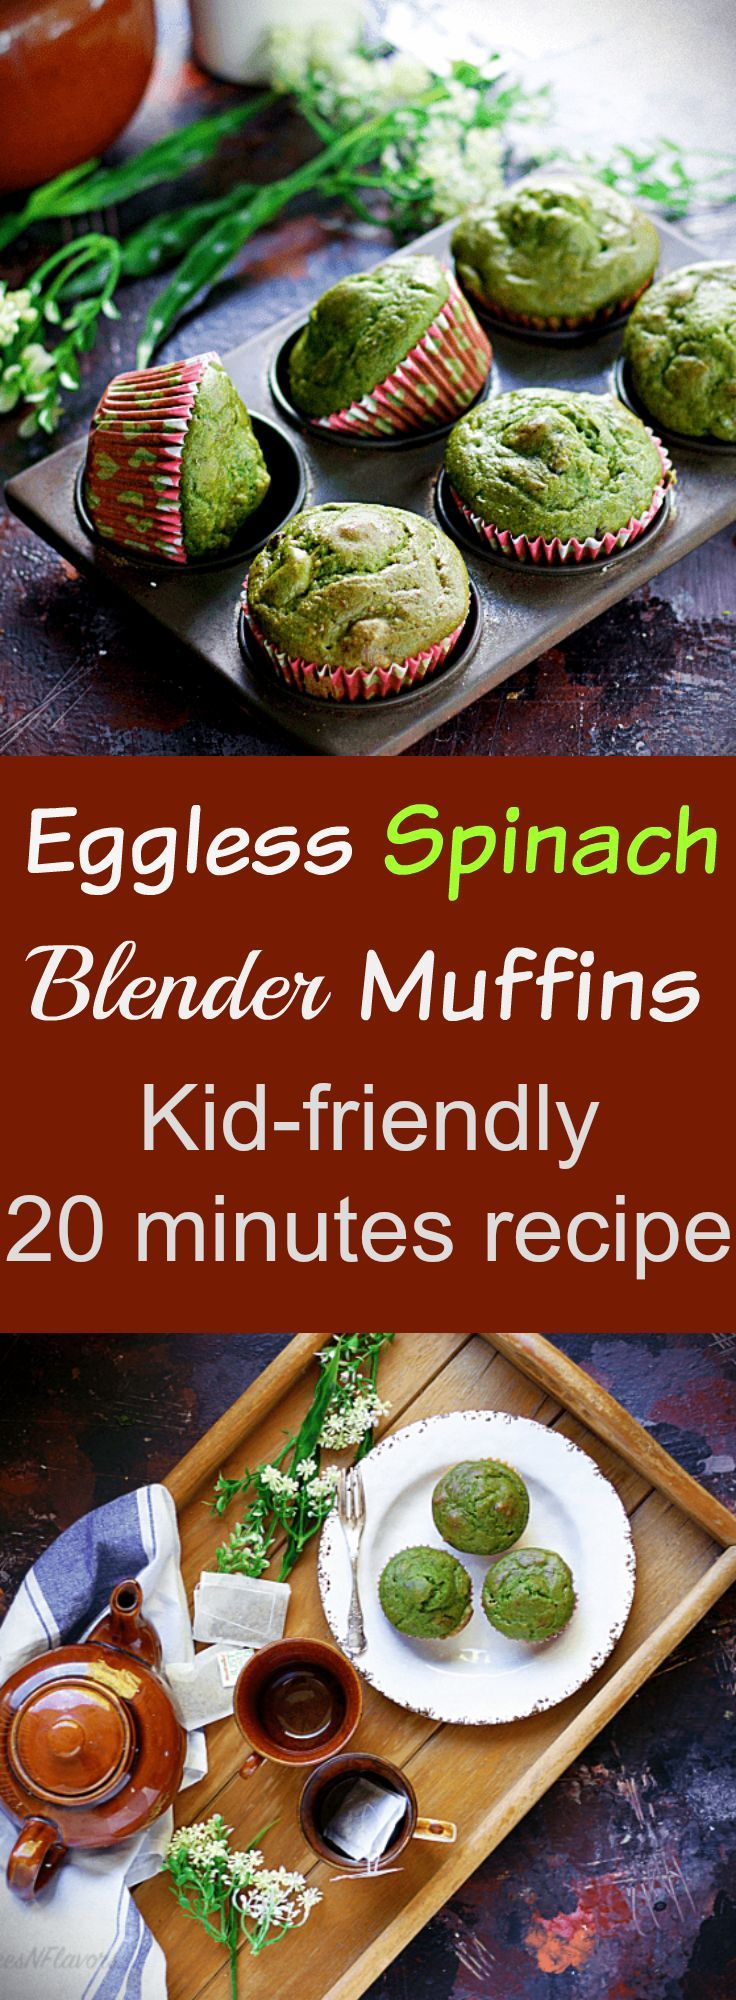 Eggless Spinach Muffins - Kid-friendly Recipe - Spices N Flavors